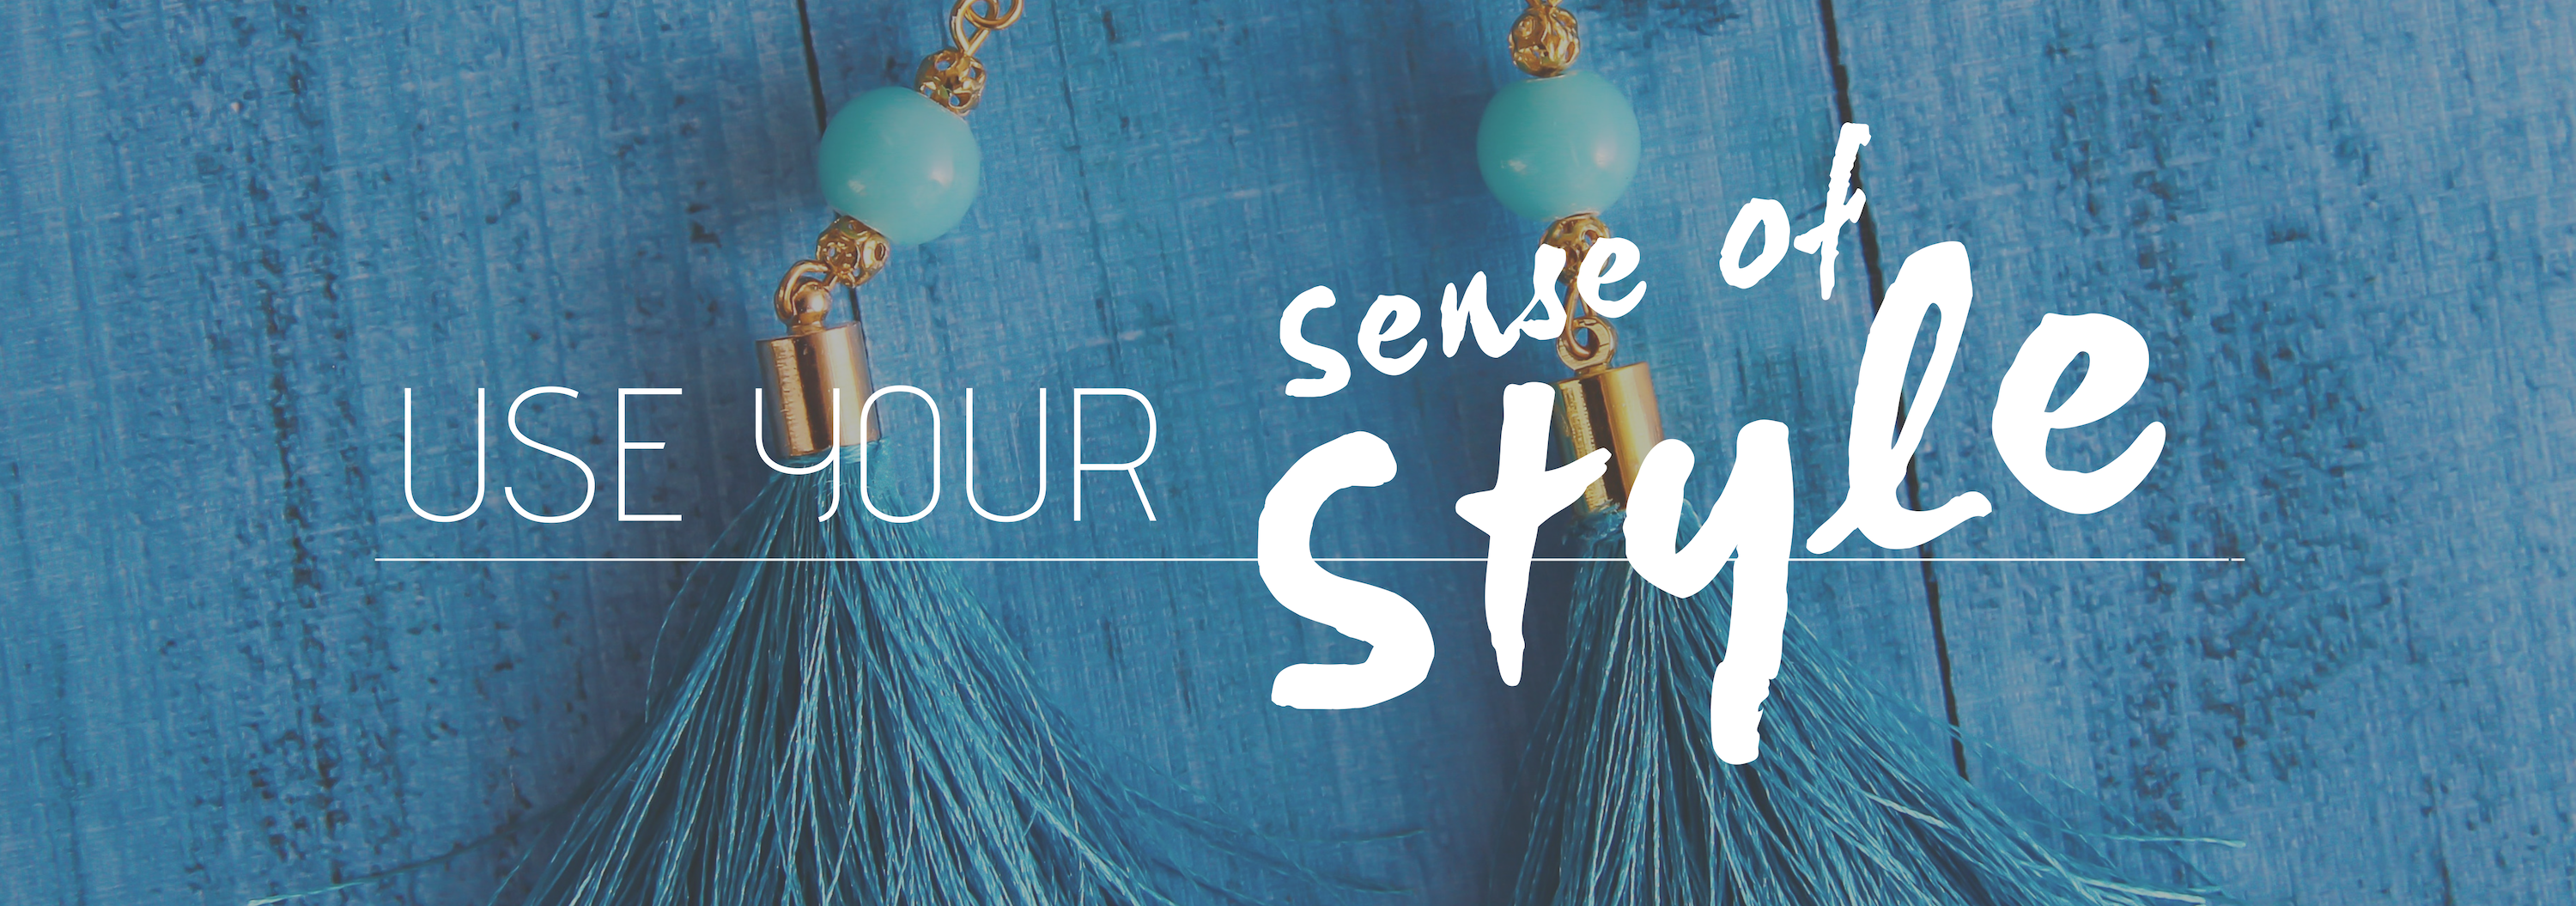 Use your sense of style